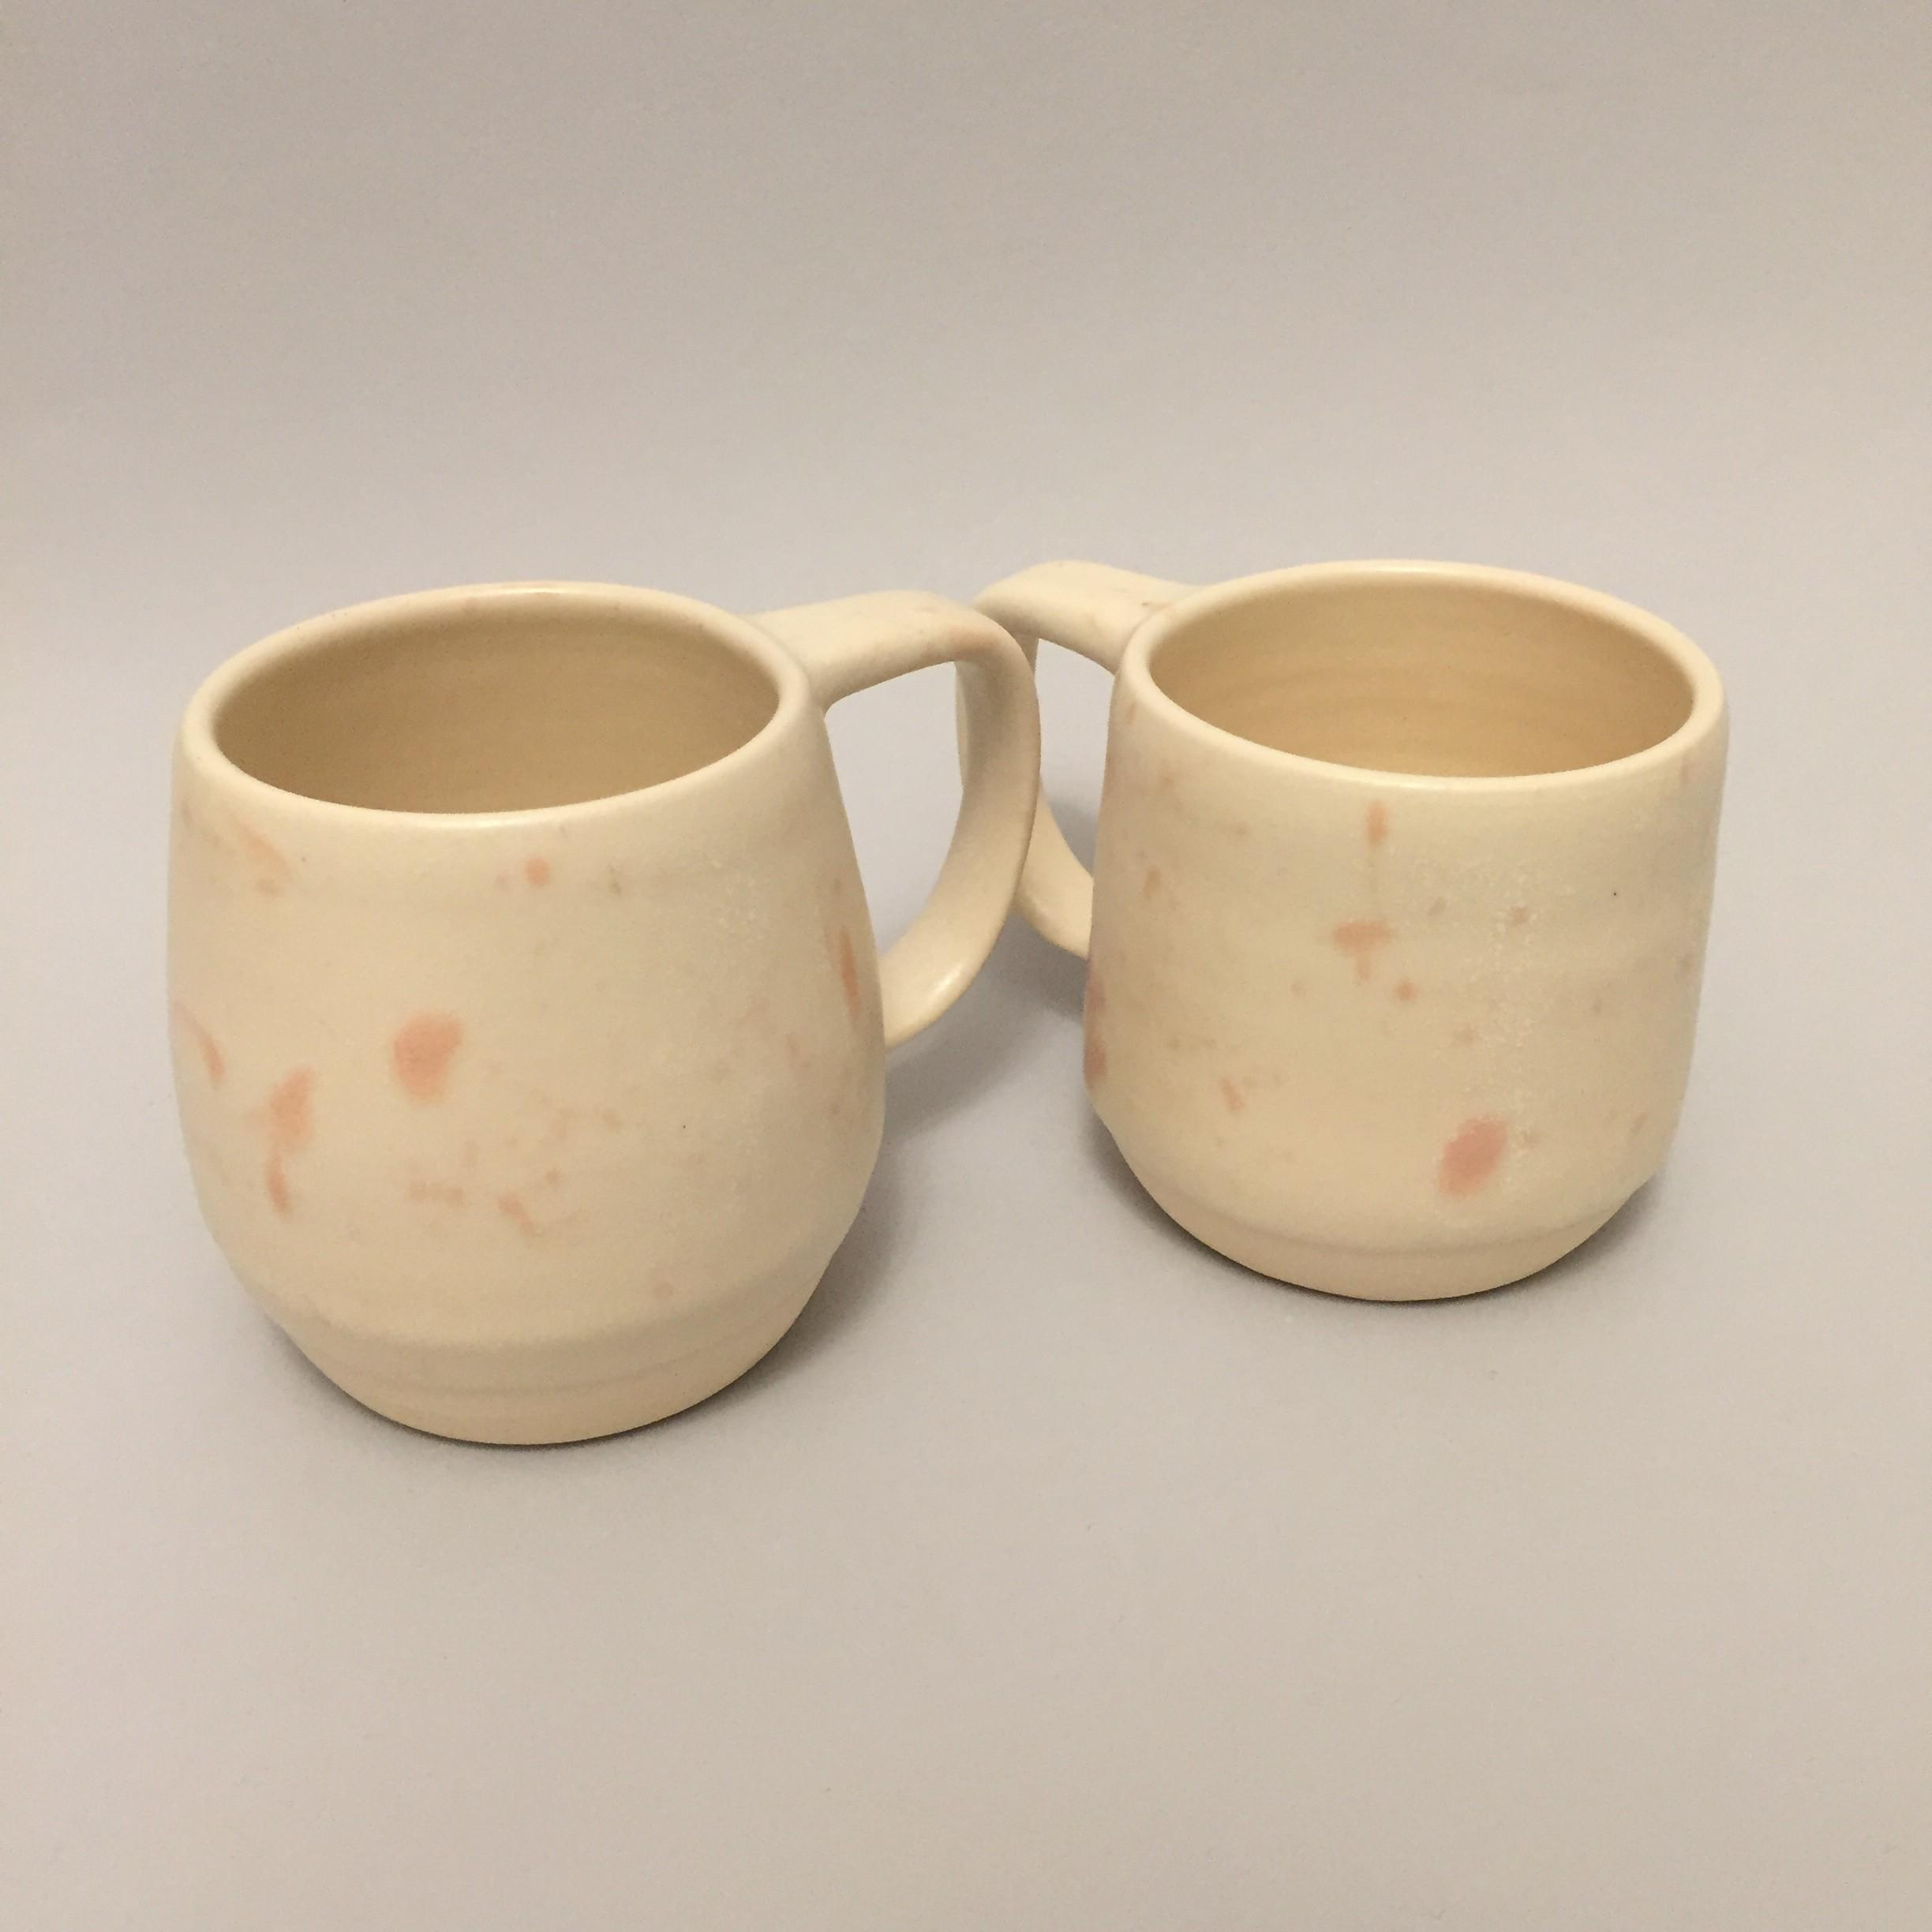 Handmade Ceramic Mug Coffee Splatter